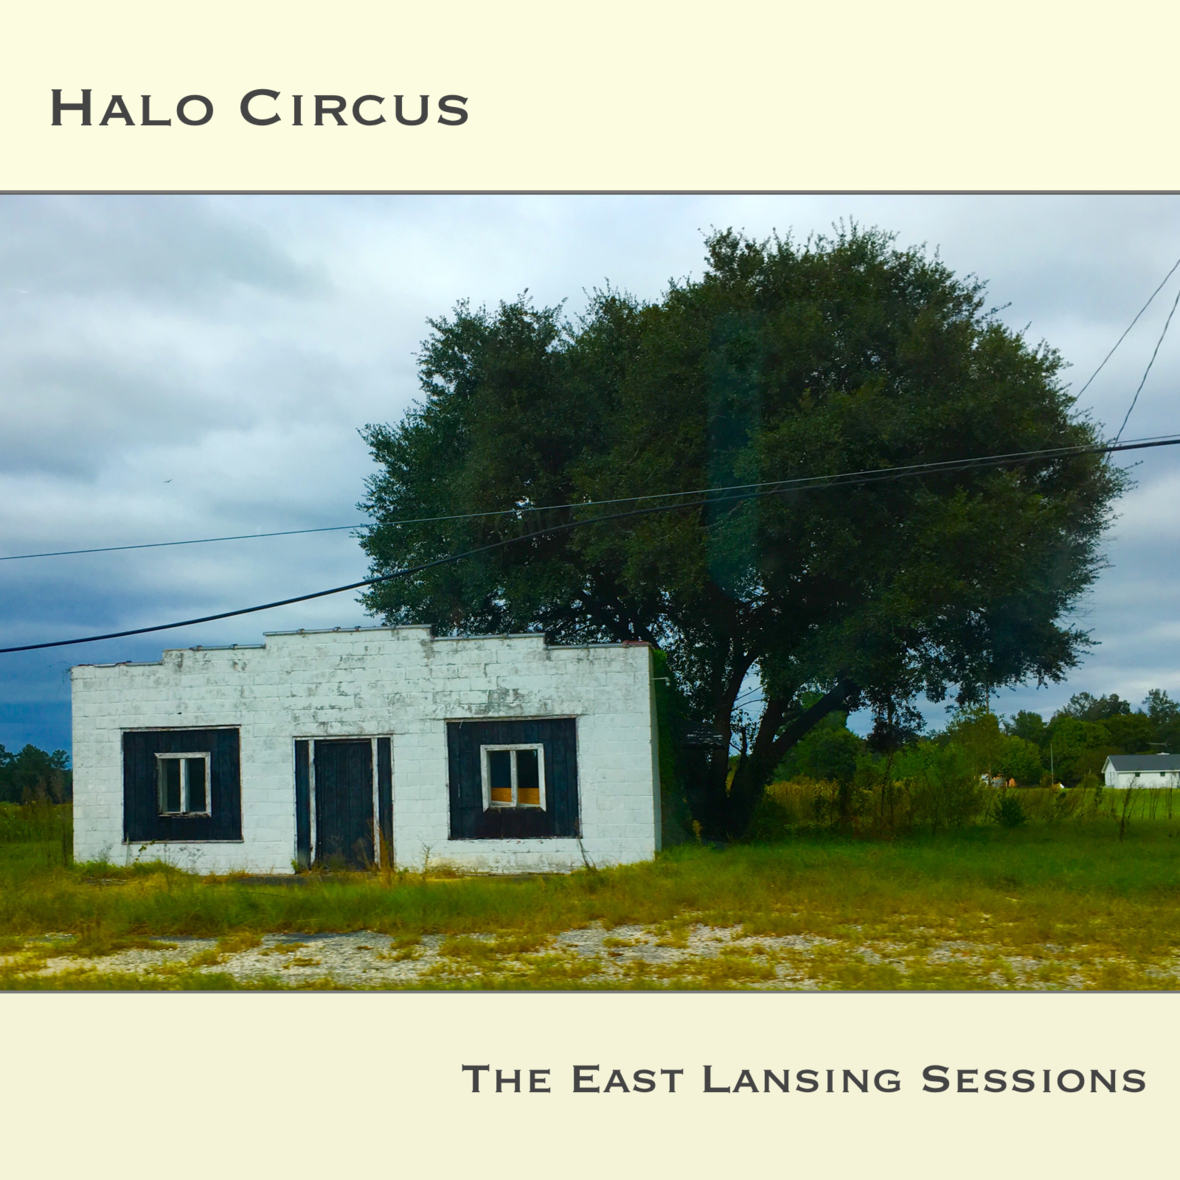 Halo Circus - The East Lansing Sessions EP - Official Cover